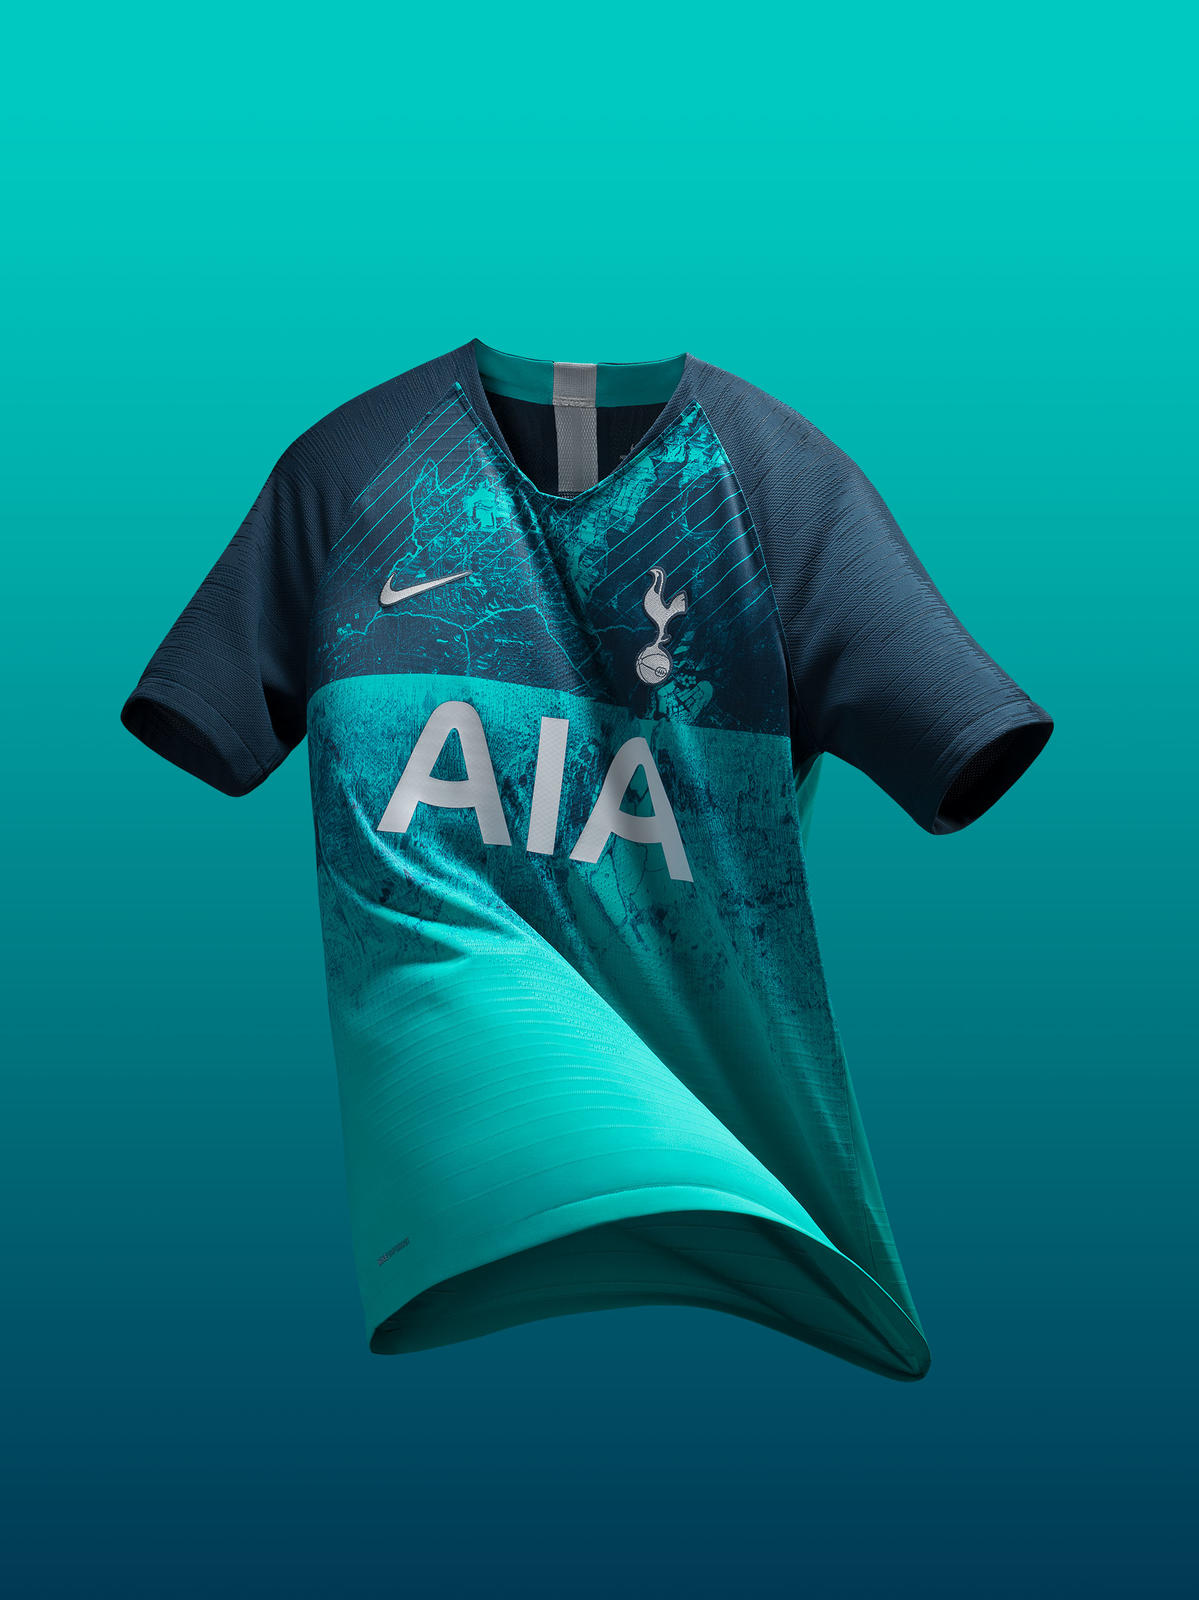 fab34070787 Tottenham Hotspur Goes Full N17 With Its 2018-19 Third Kit - Nike News